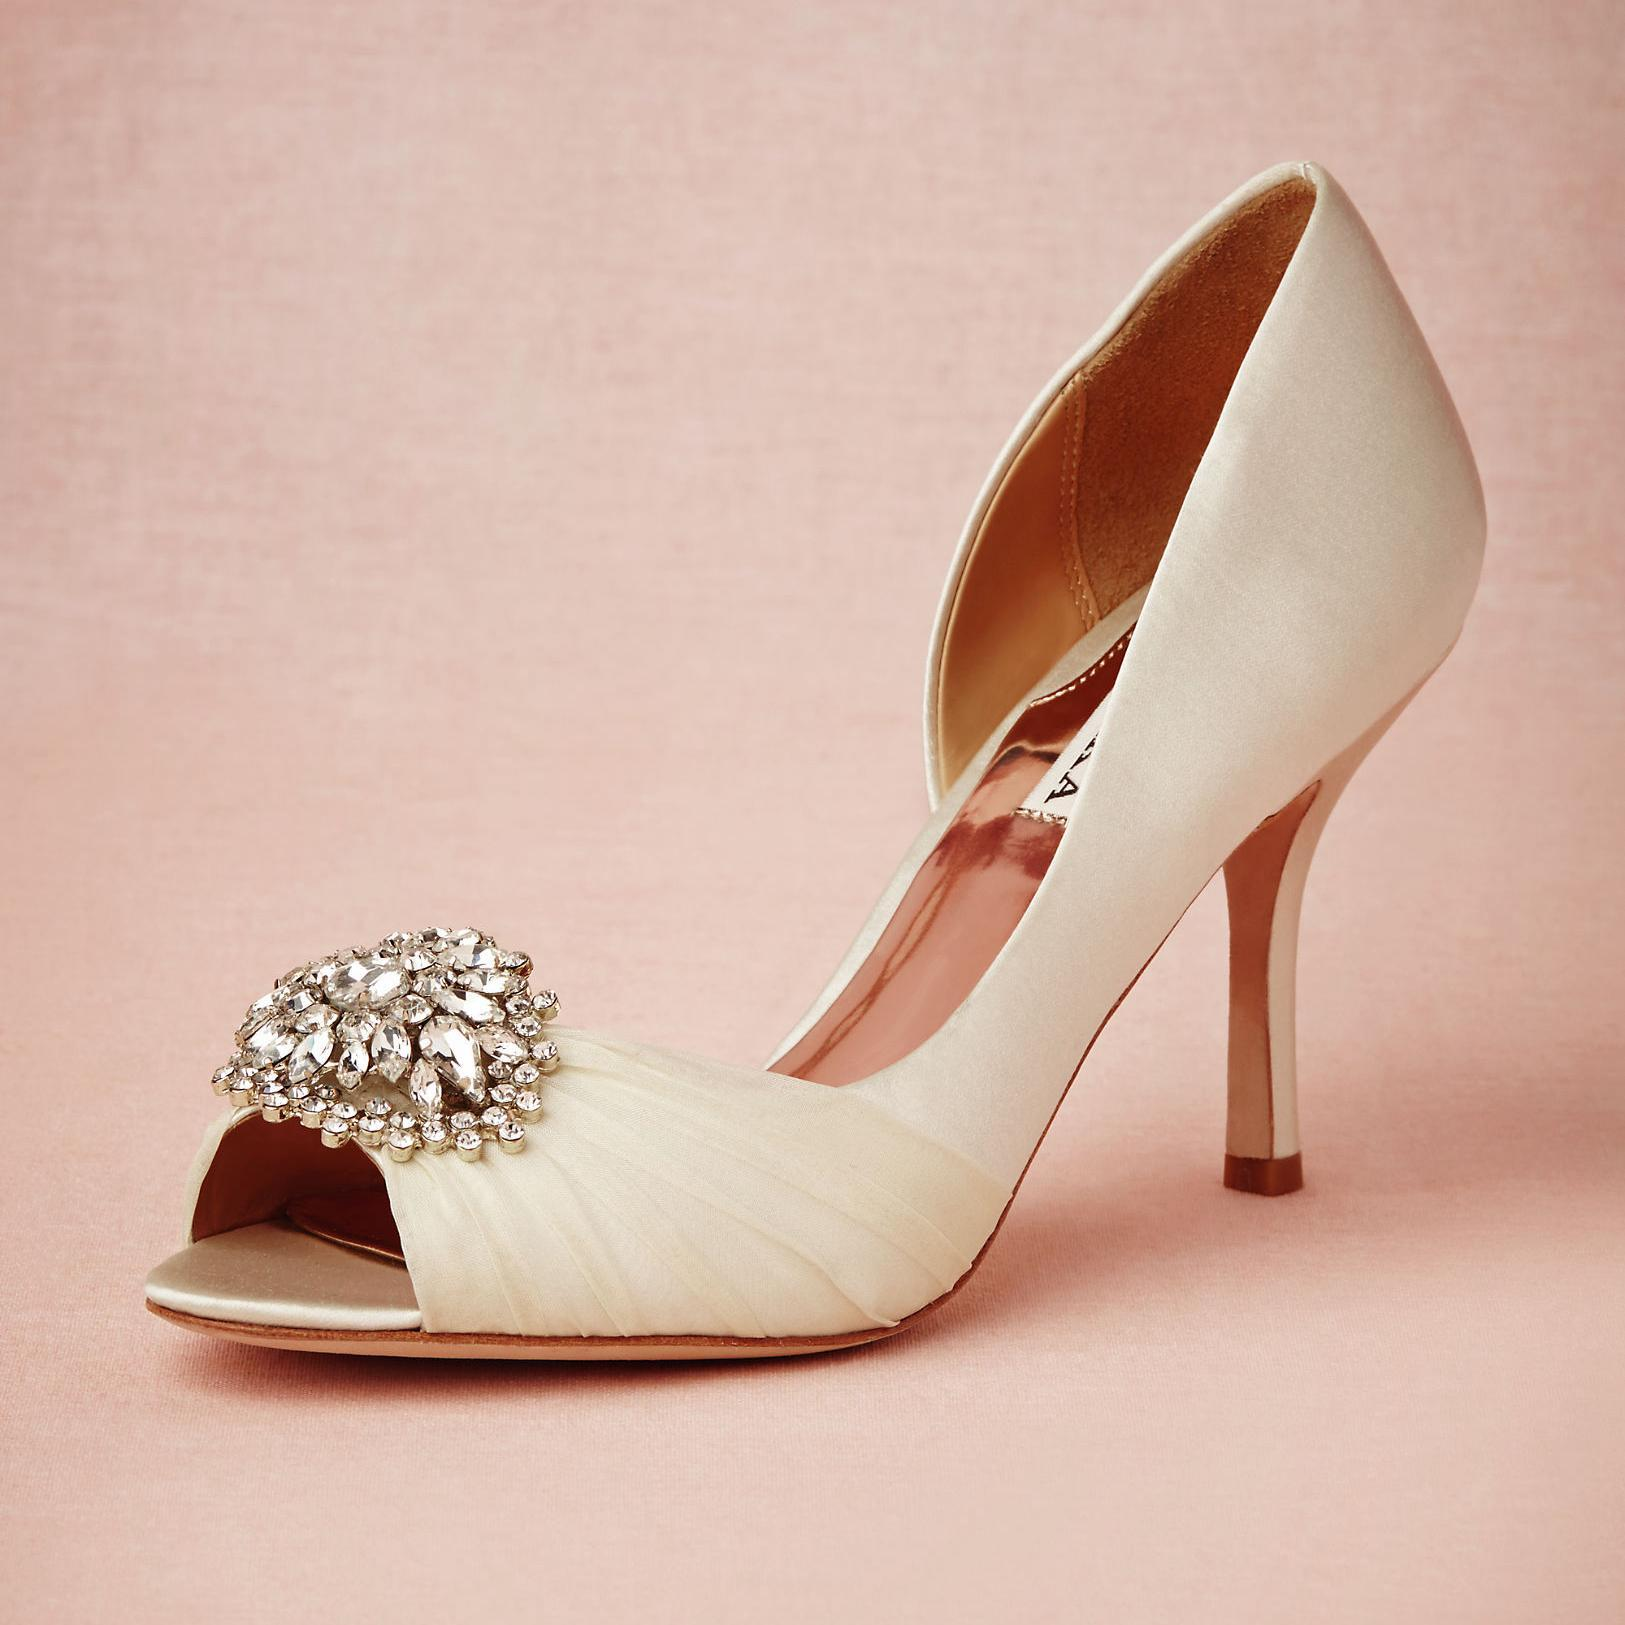 Glamorous Mid Heel Wedding Shoes Heels Custom Pumps Peep